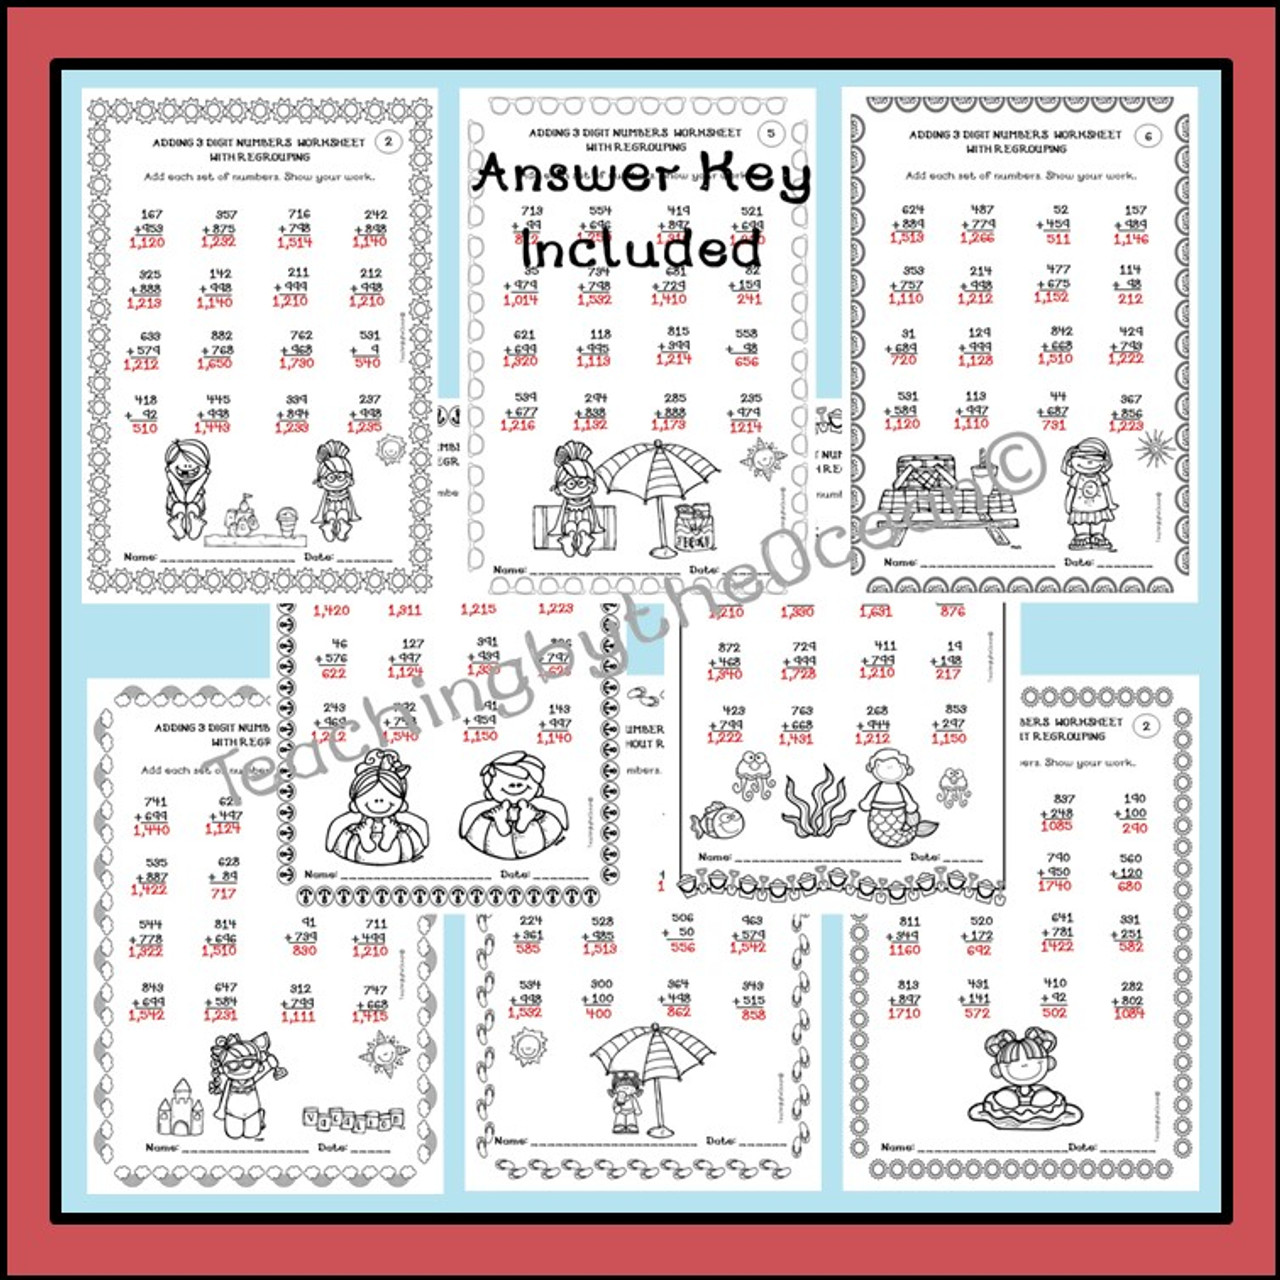 Adding 3 Digit Numbers Worksheets - Summer Themed